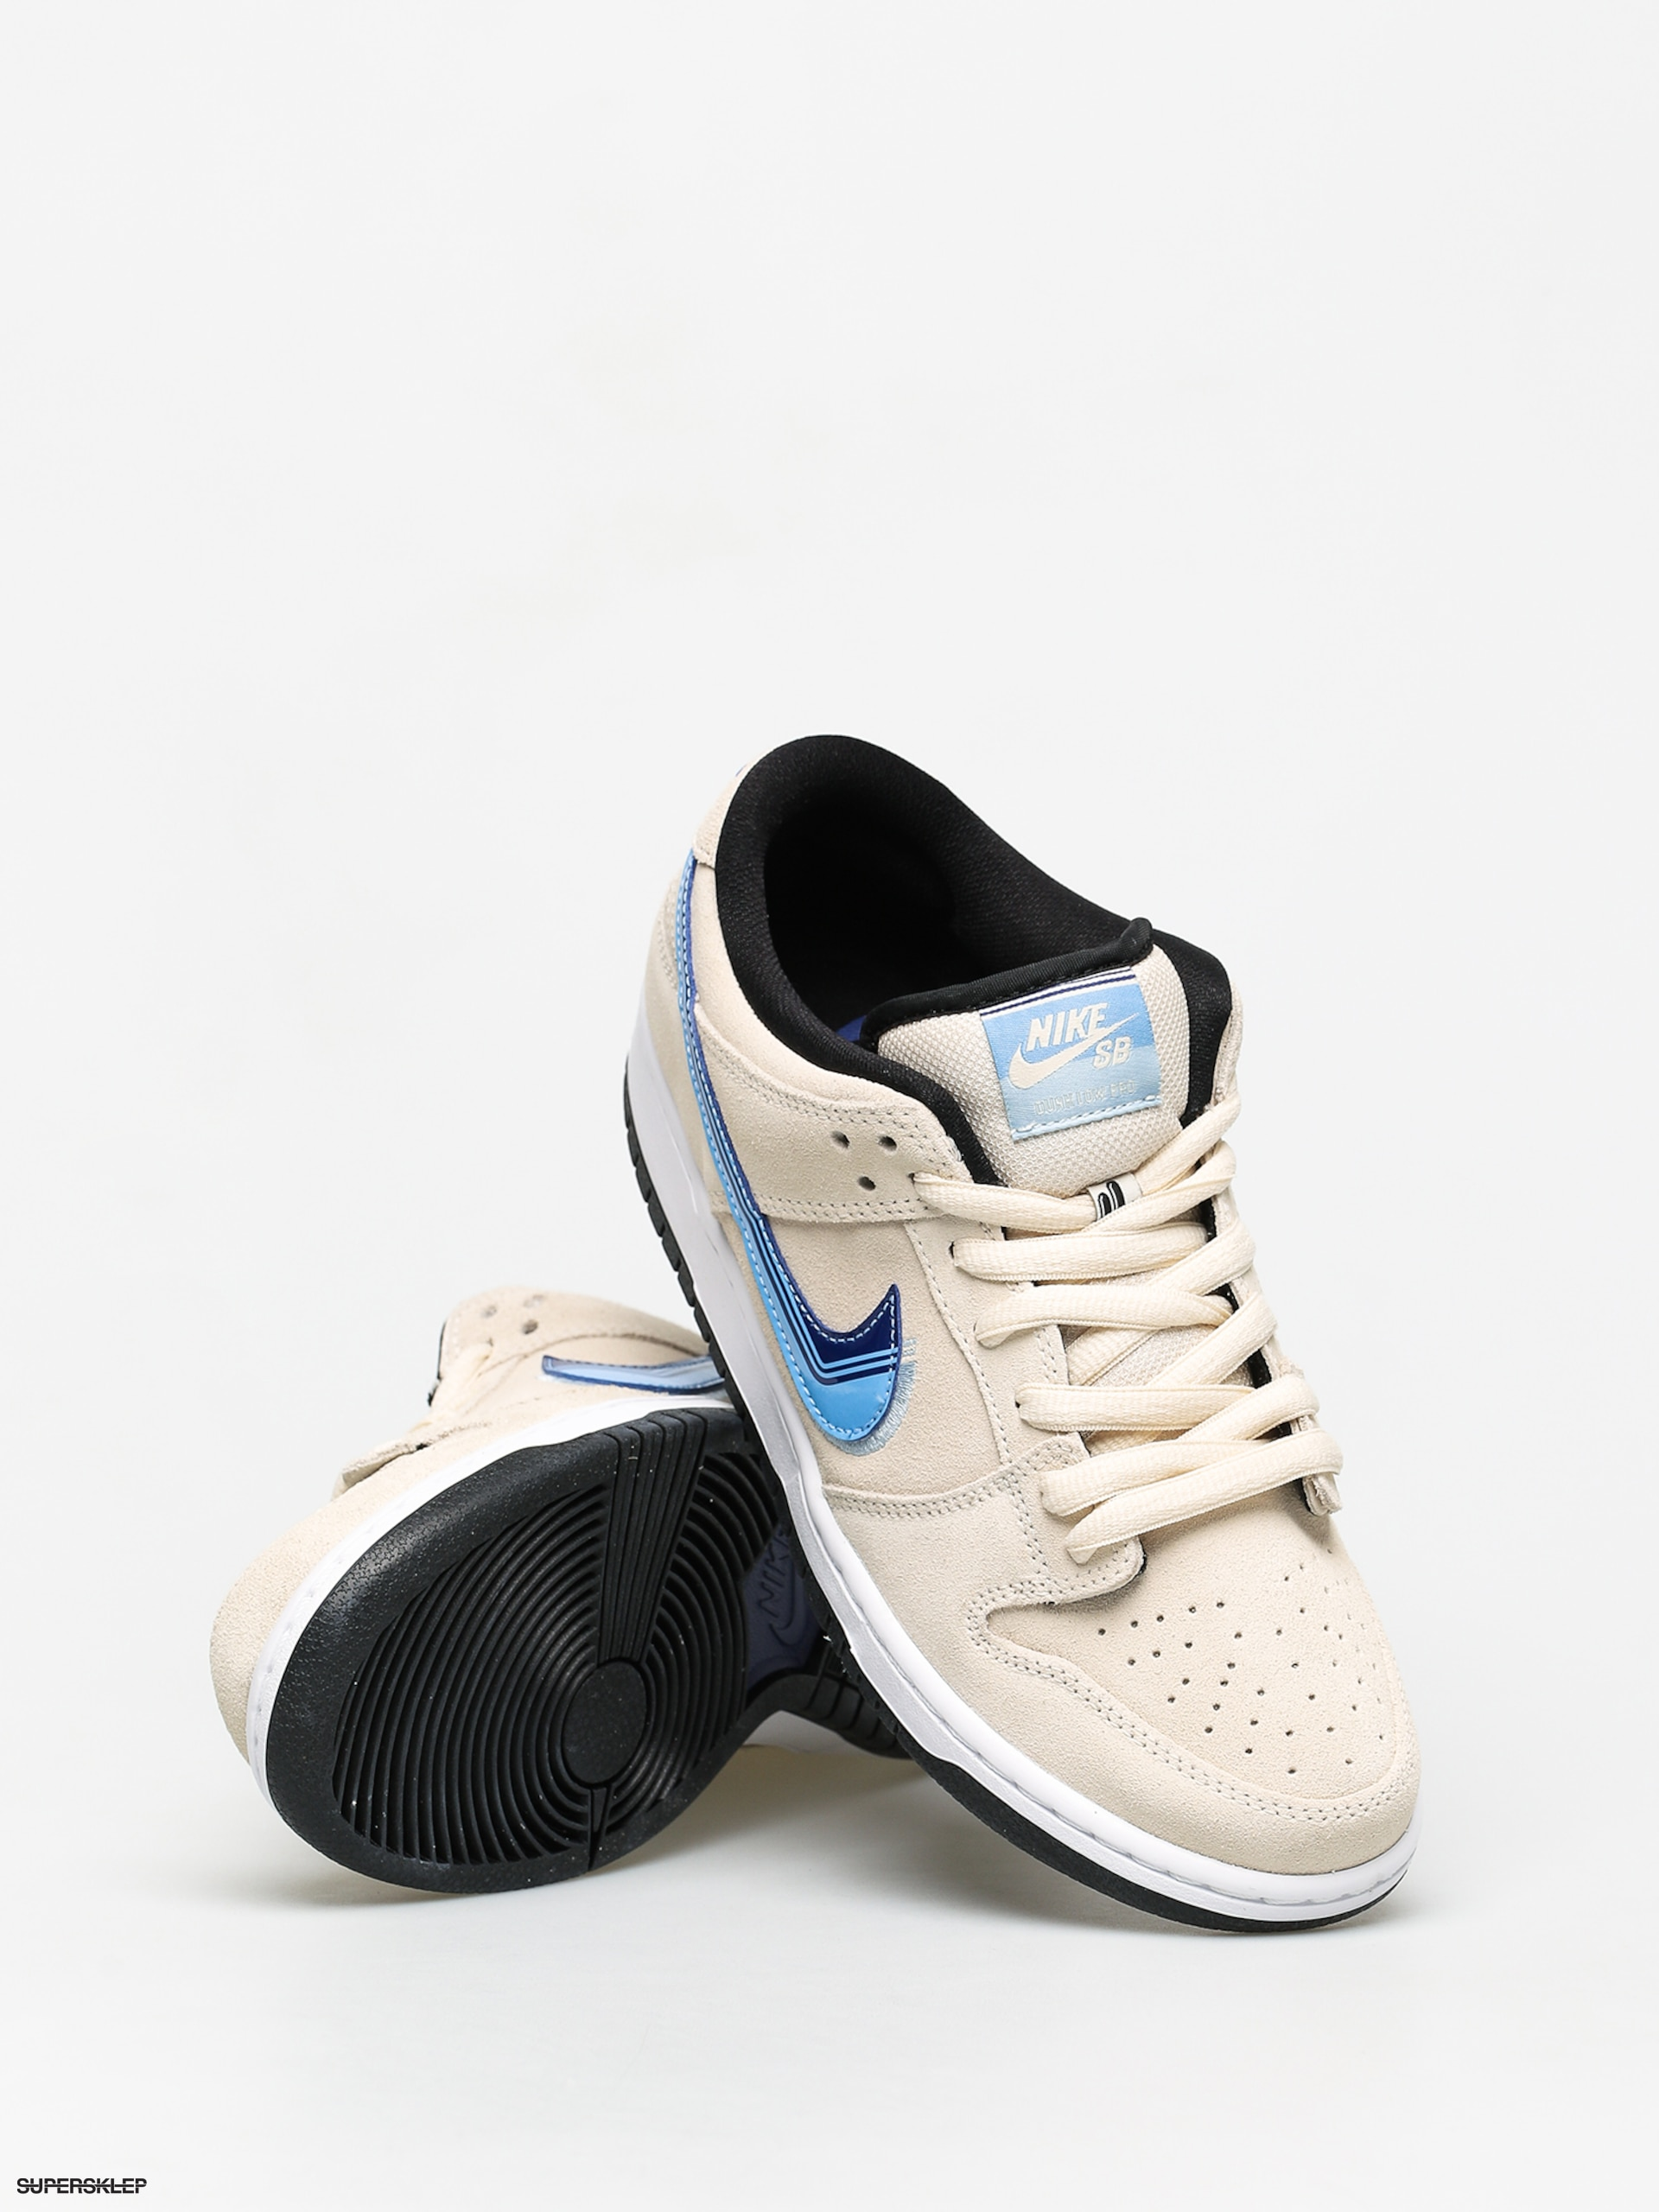 Buty Nike SB Dunk Low Pro (light creamdeep royal blue)